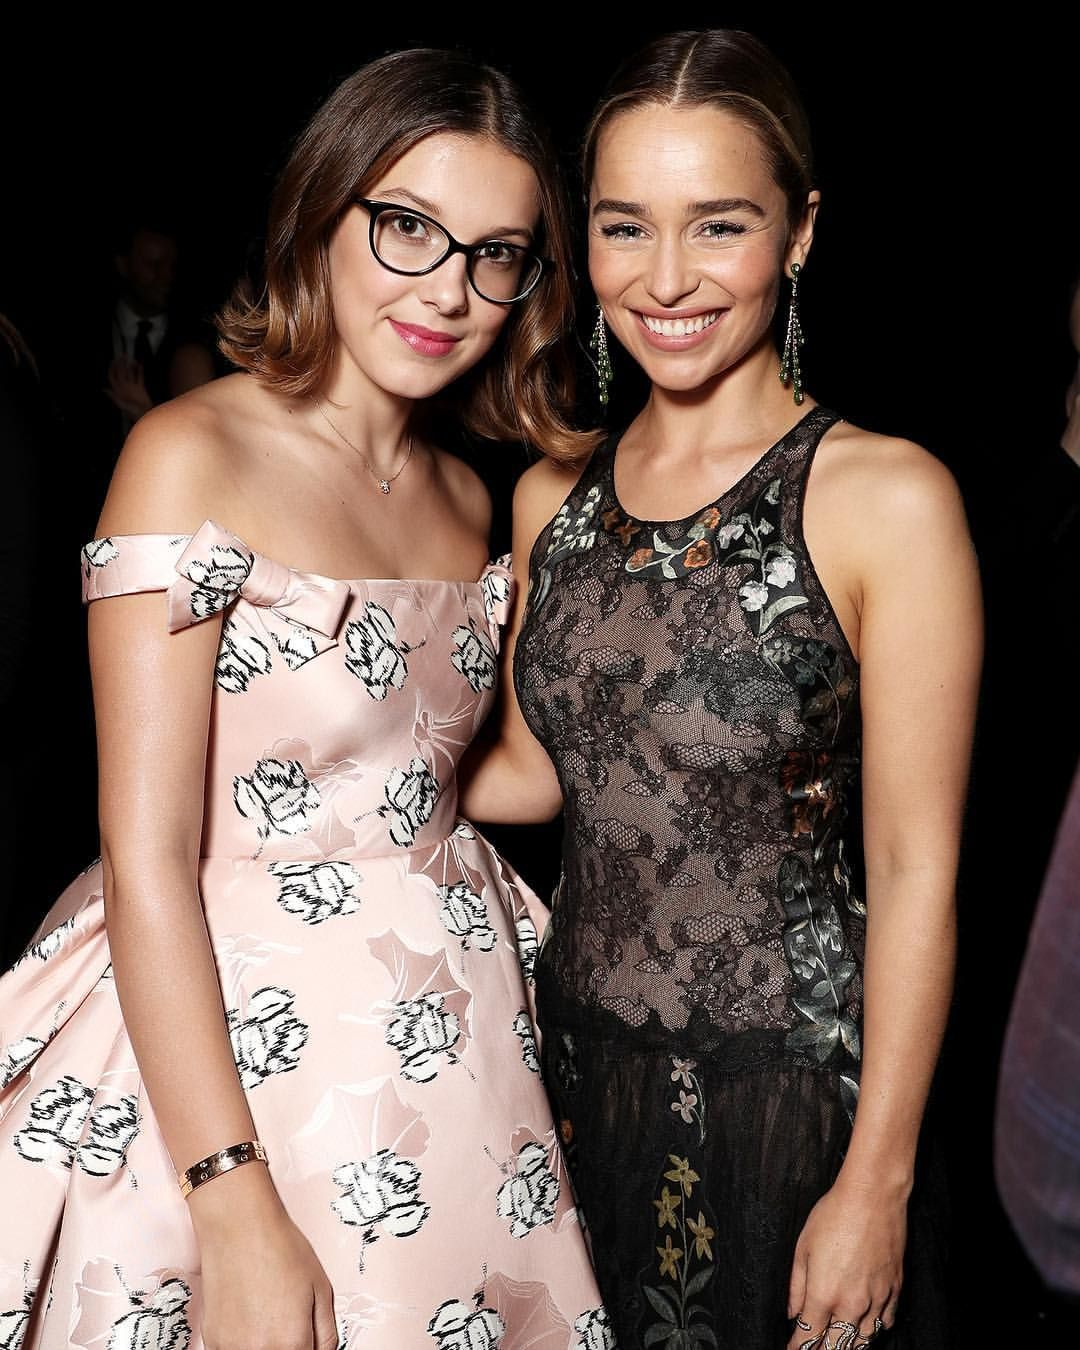 Millie Bobby Brown And Emilia Clarke Emmys With Images Millie Bobby Brown Bobby Brown Stranger Things Bobby Brown